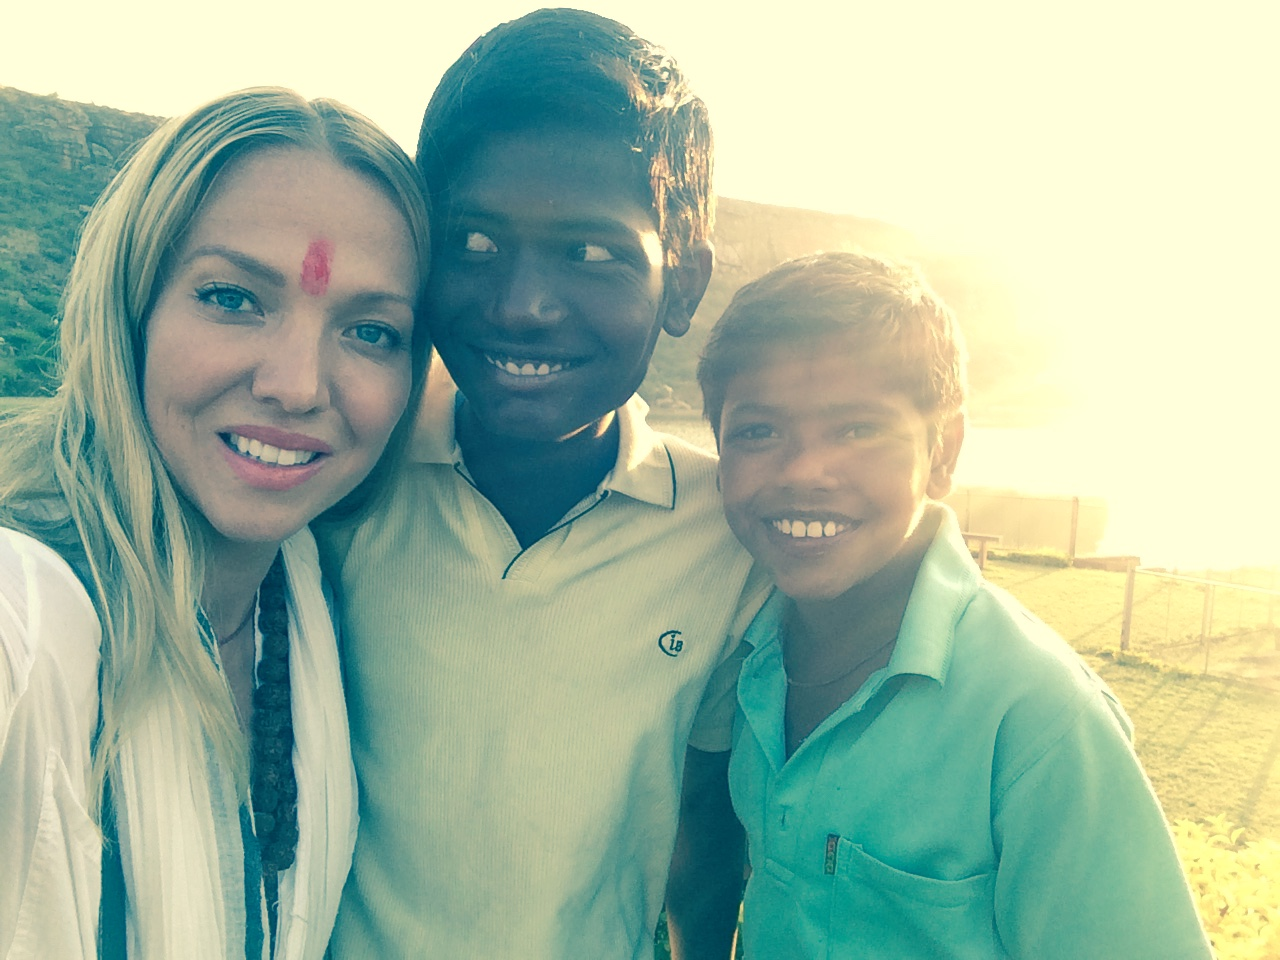 Local children welcome with a smile in Badami India